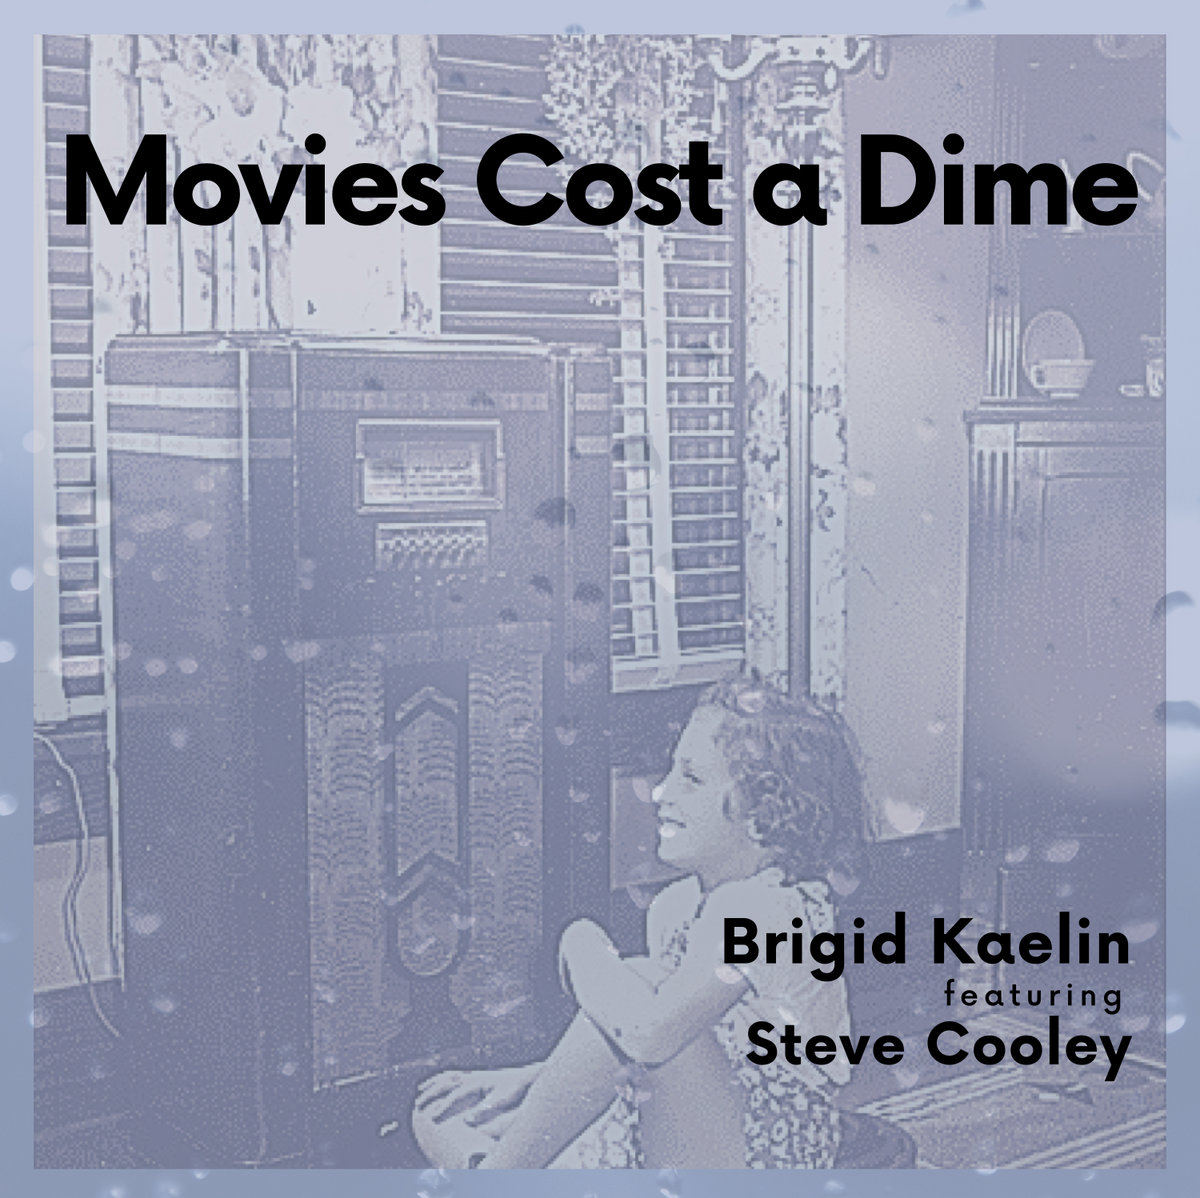 Movies Cost a Dime by Brigid Kaelin